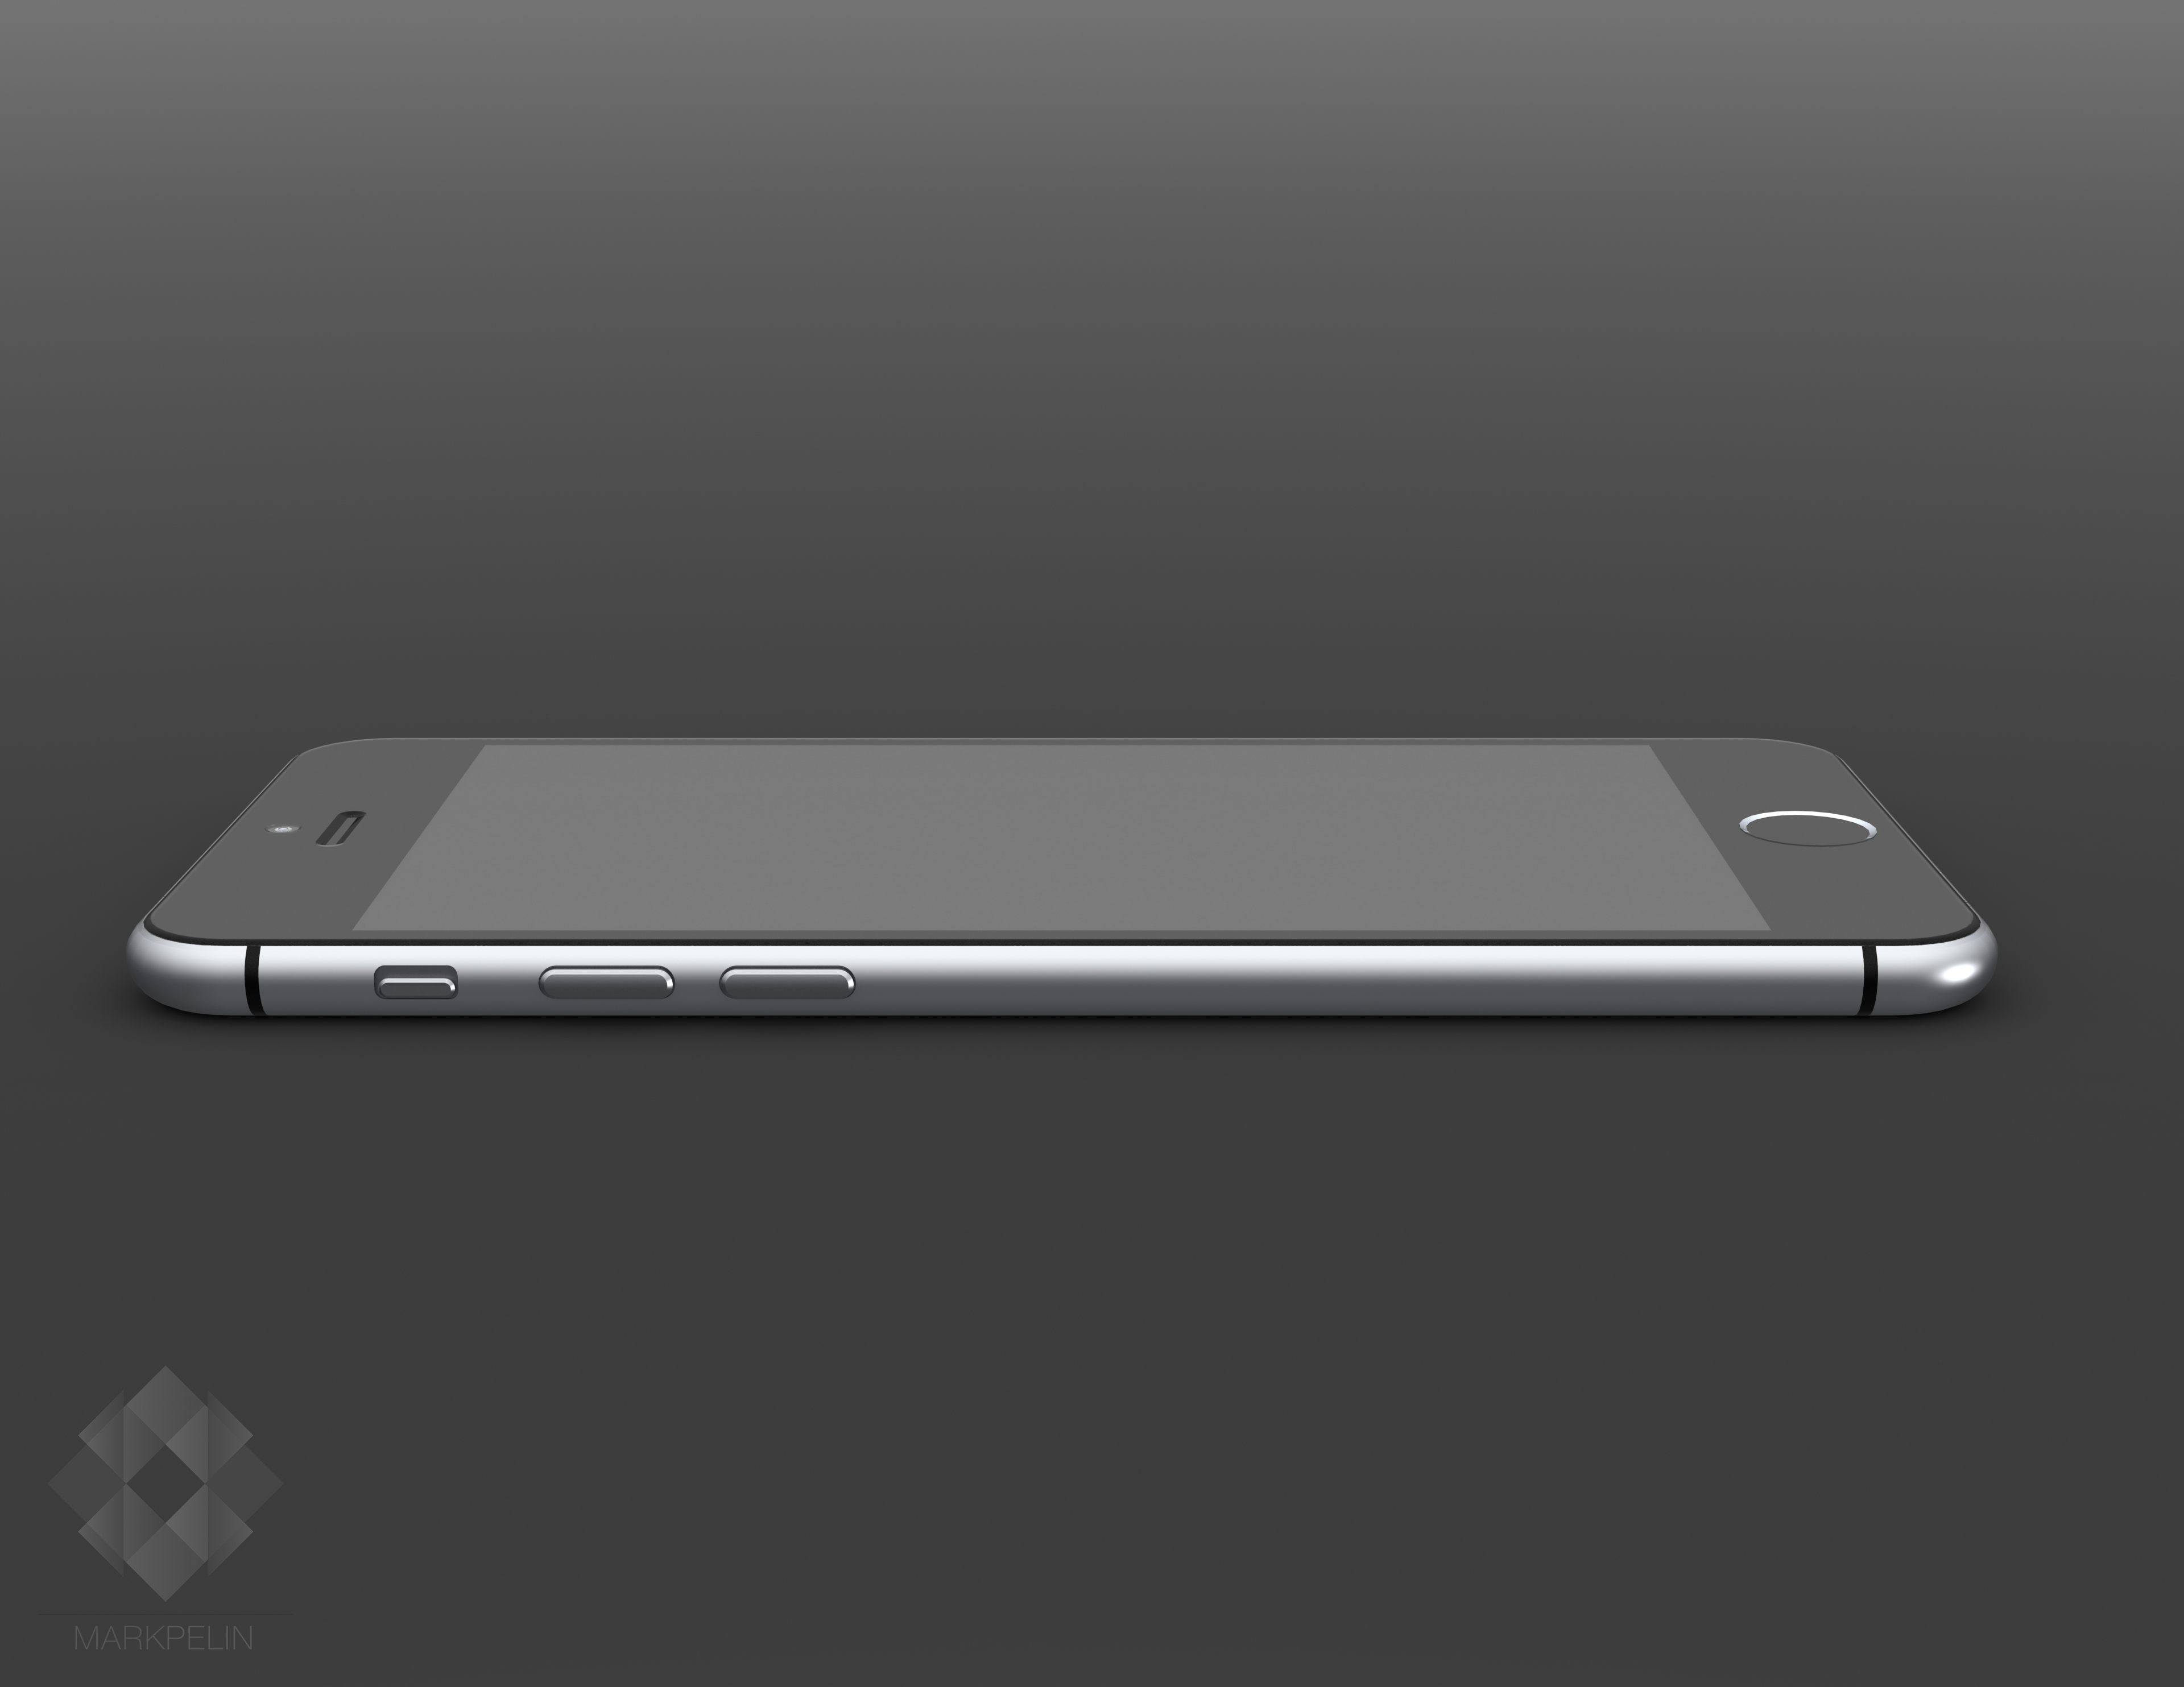 iPhone 6 render (Mark Pelin 008)